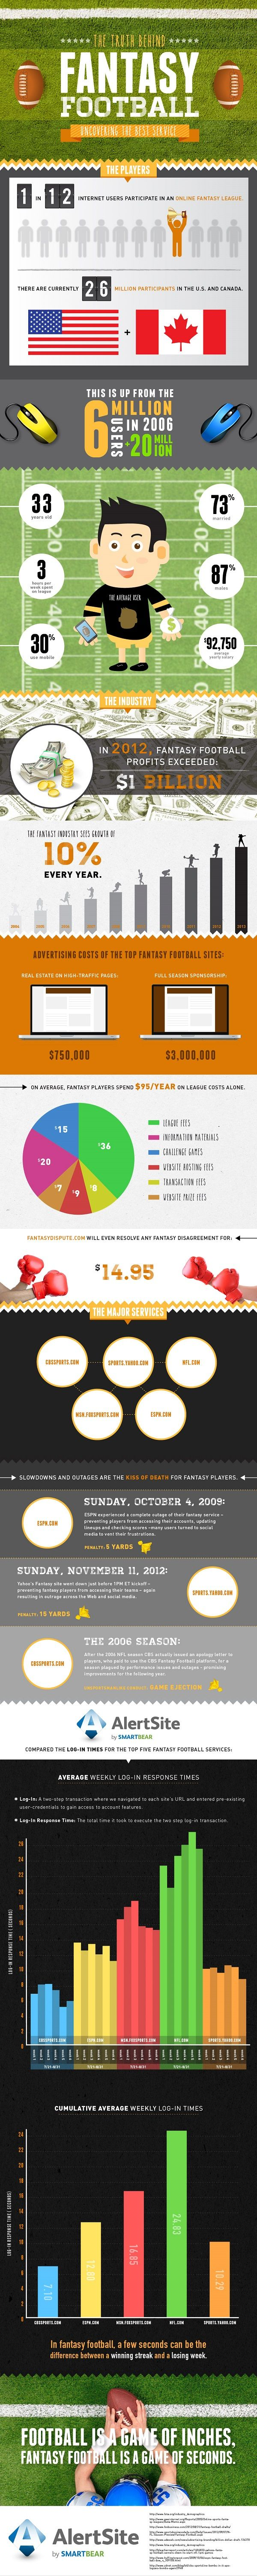 Uncovering the Best Fantasy Football Service Provider [Infographic]